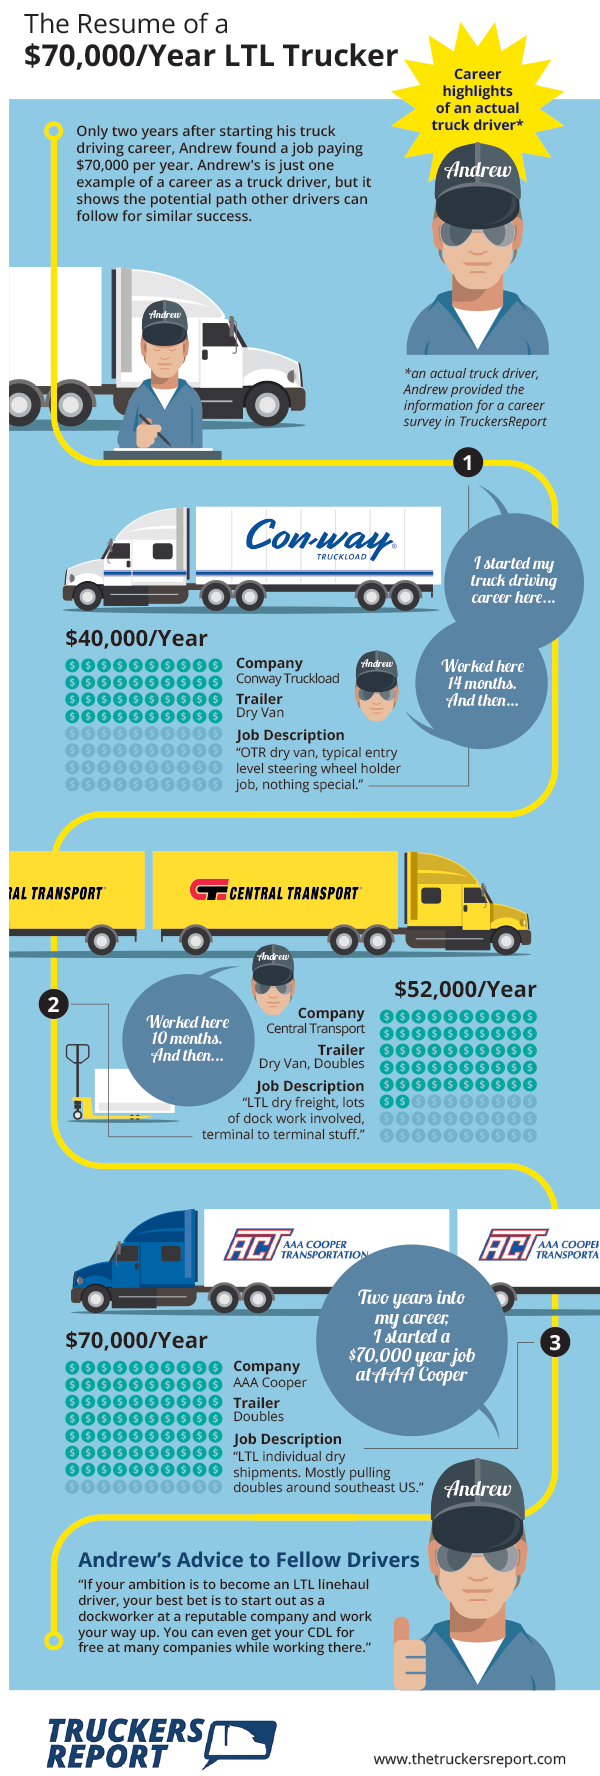 Aaa Insurance Careers: How-to: CDL School To $70,000 Truck Driving Job In 2 Years